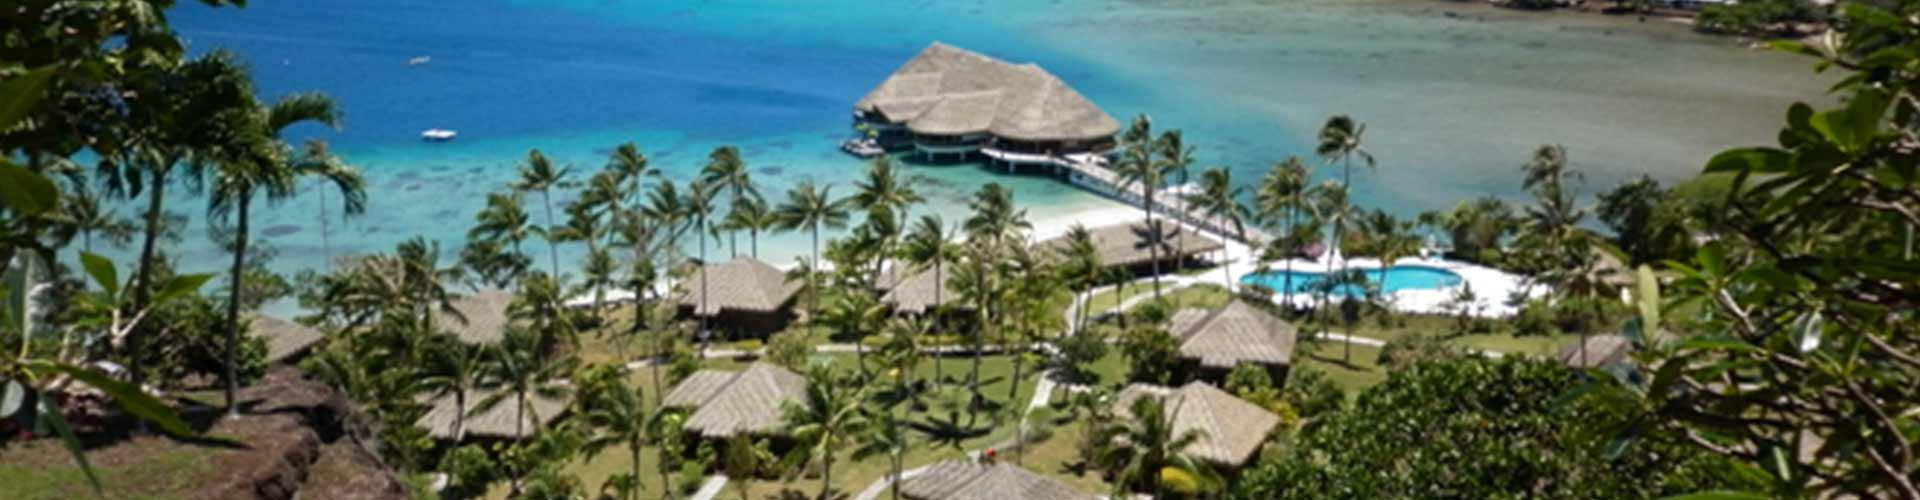 hotel-royal-huahine-air-tahiti-